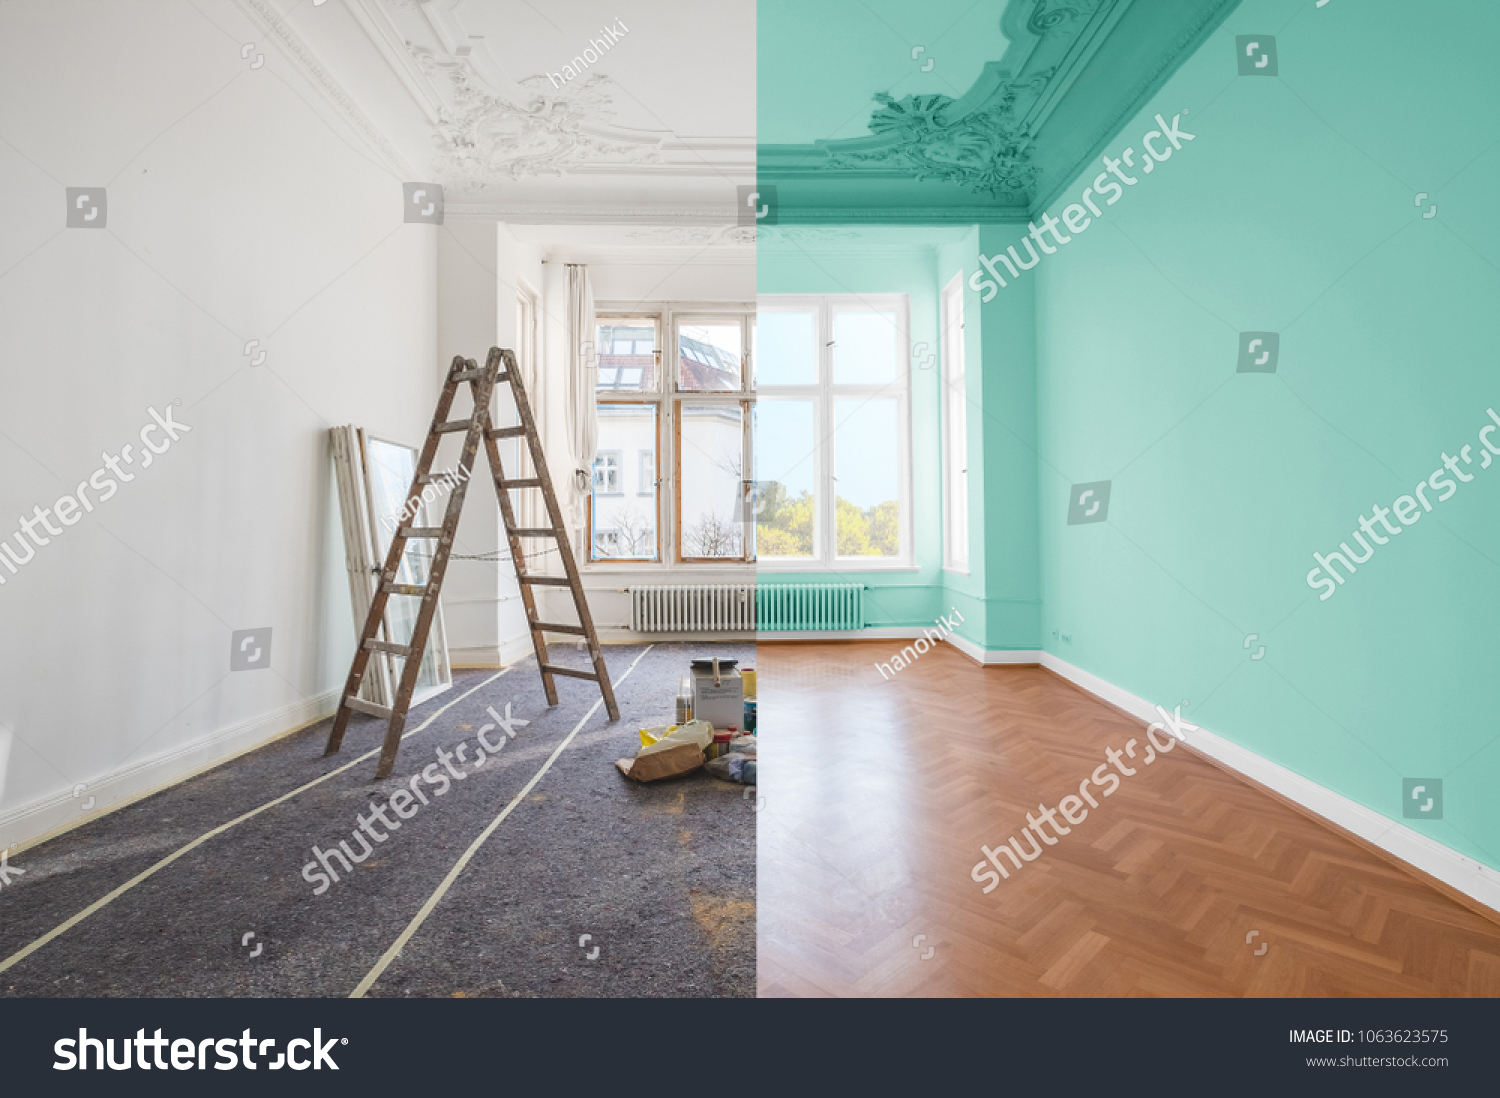 stock-photo-renovation-concept-room-before-and-after-renovation-1063623575